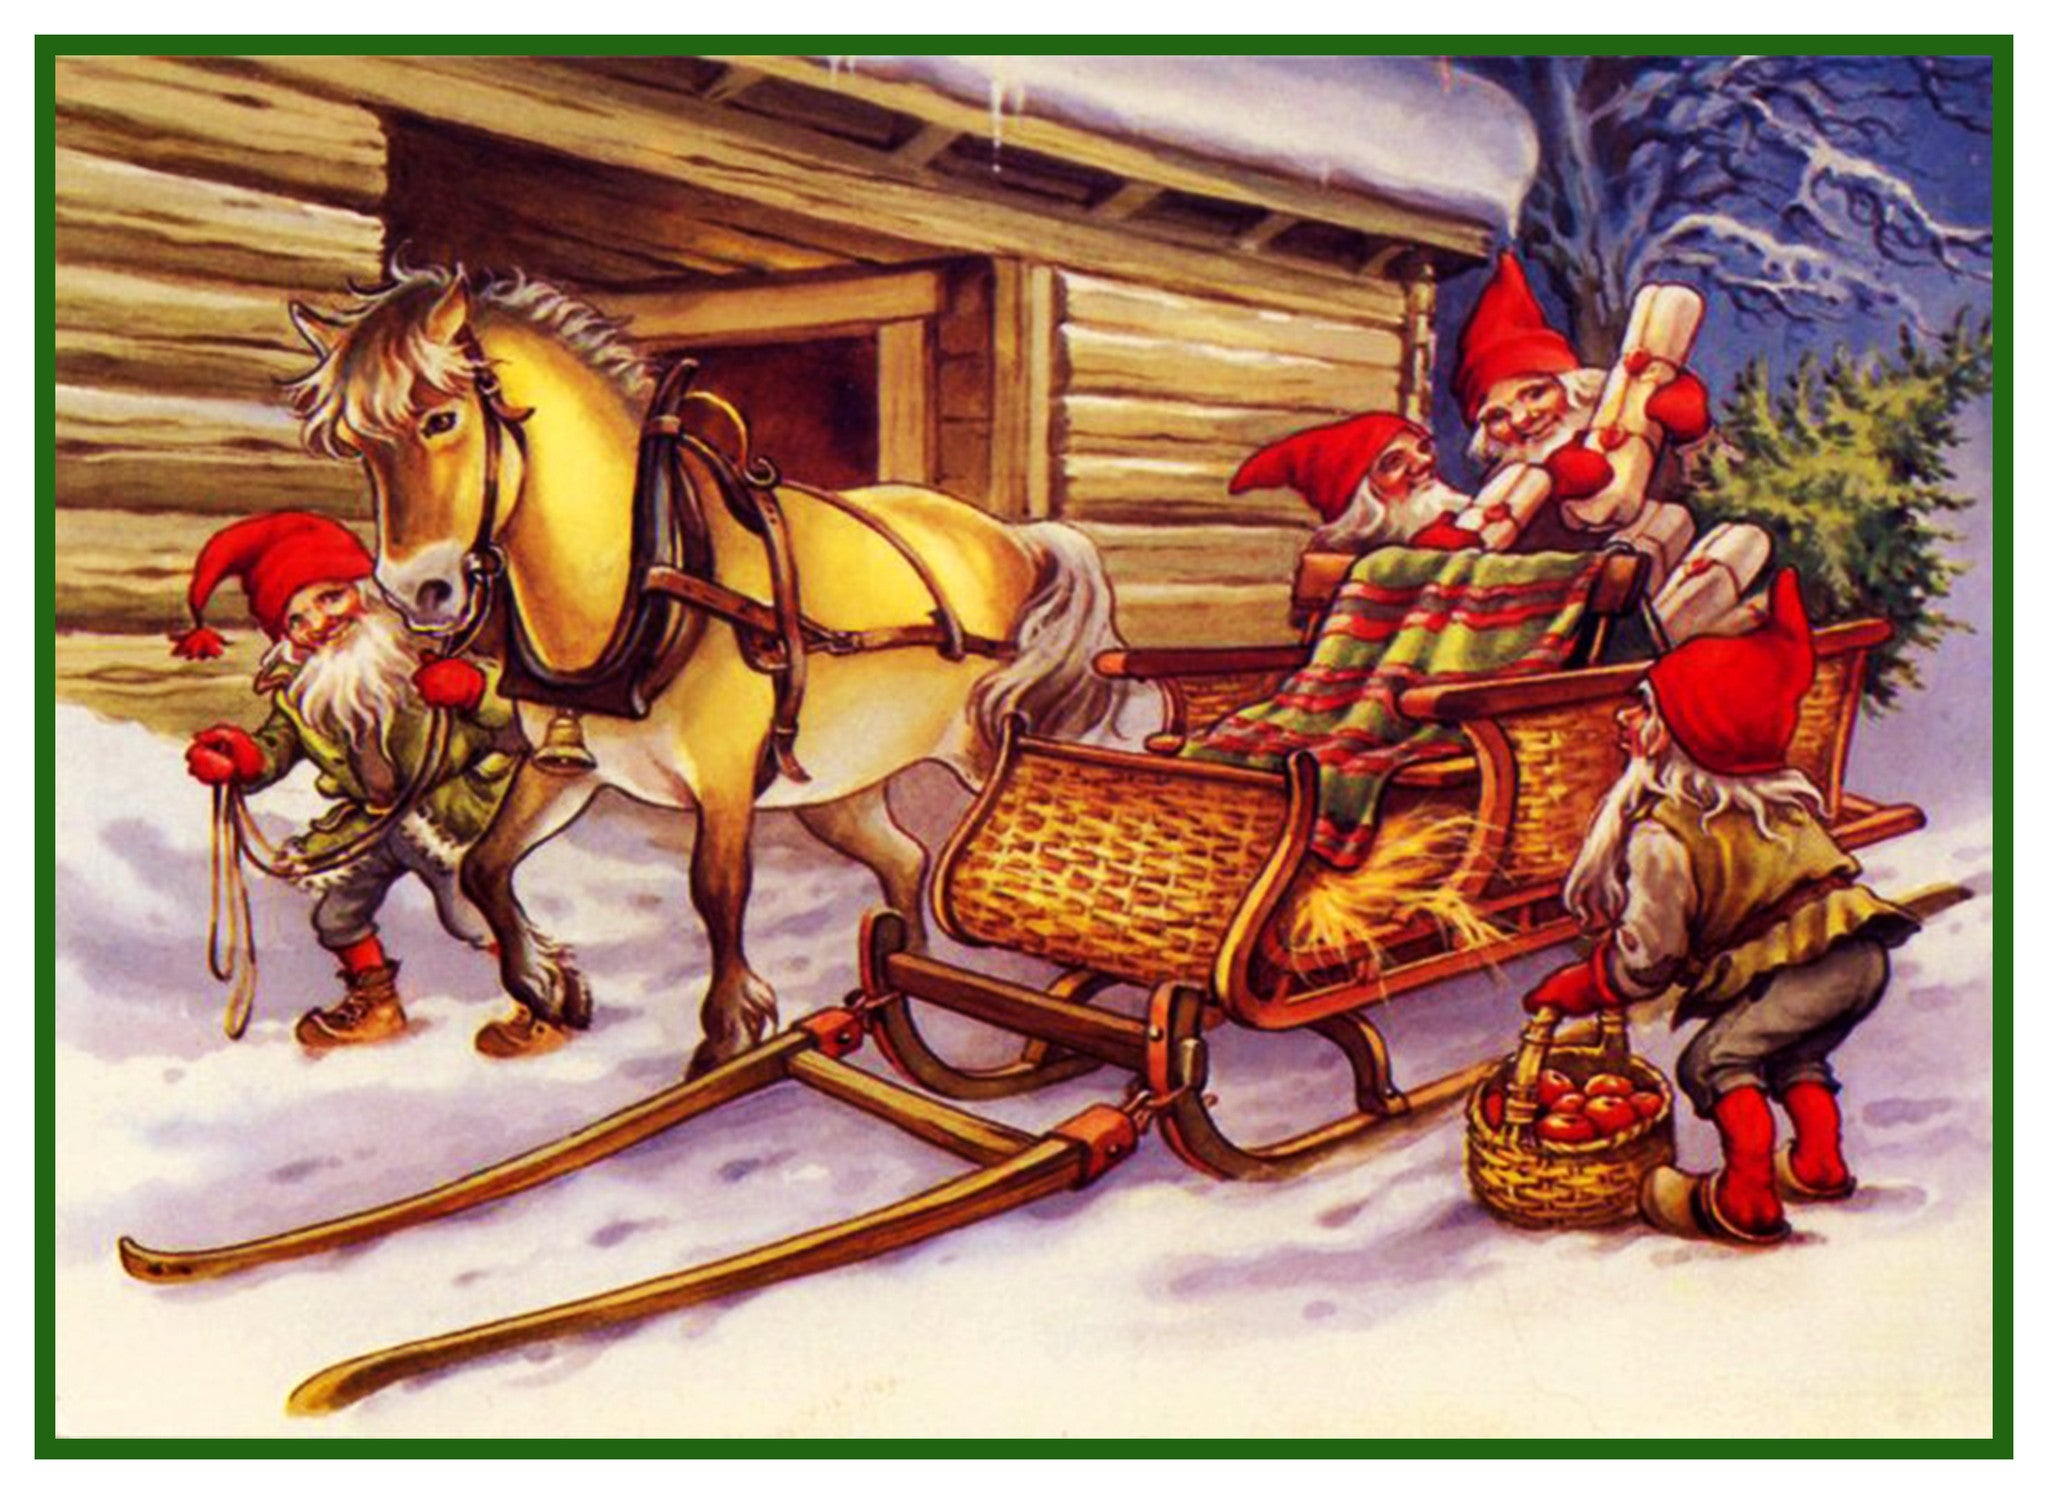 Christmas Horse Pictures.Elves Pack Christmas Horse Drawn Sleigh Jenny Nystrom Holiday Christmas Counted Cross Stitch Pattern